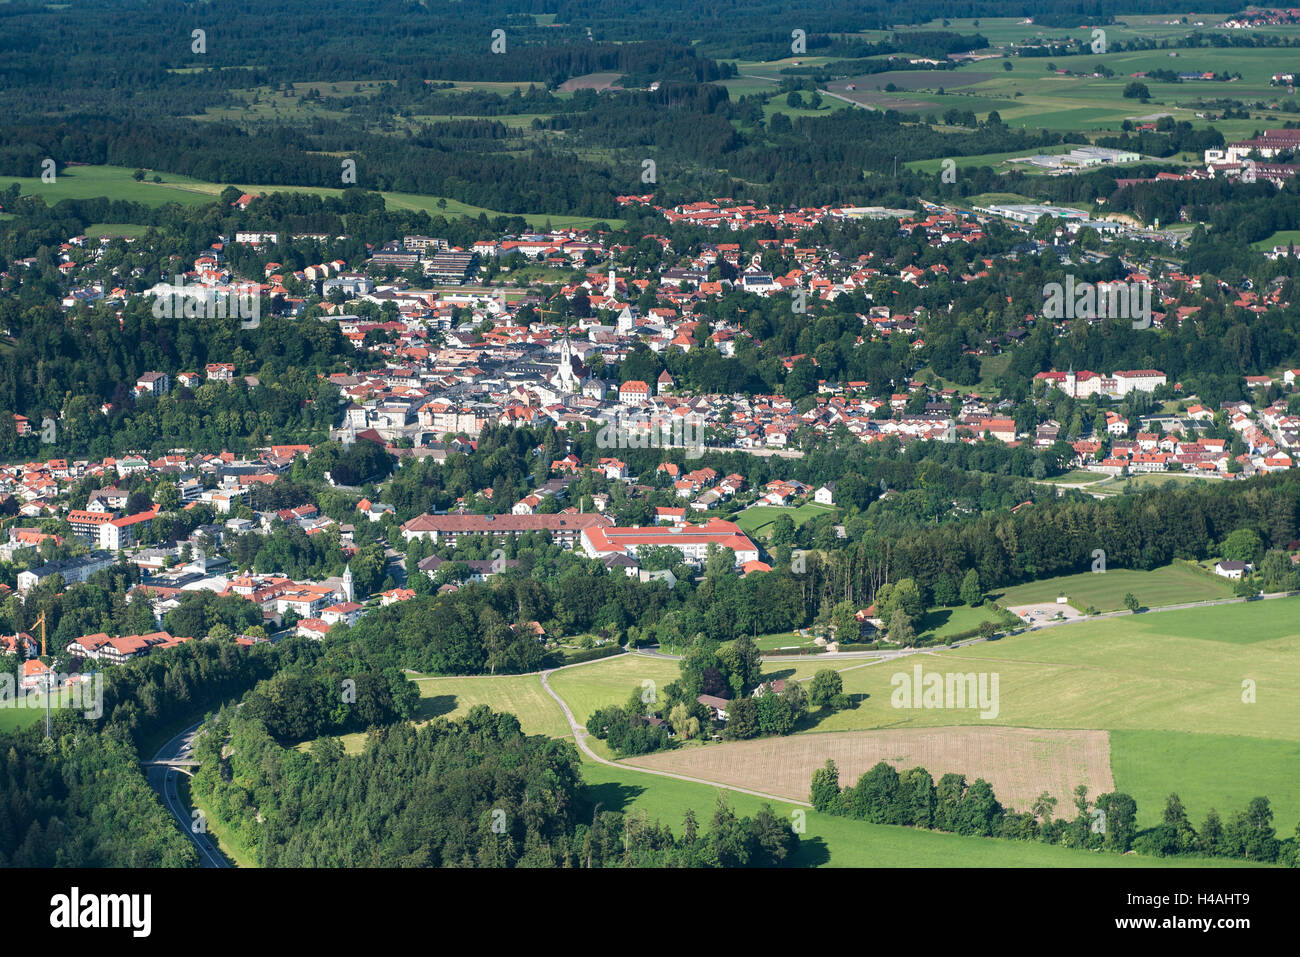 Bad Tölz, town centre, uplands, Bavaria, Germany, aerial picture, holiday region, tourist location - Stock Image